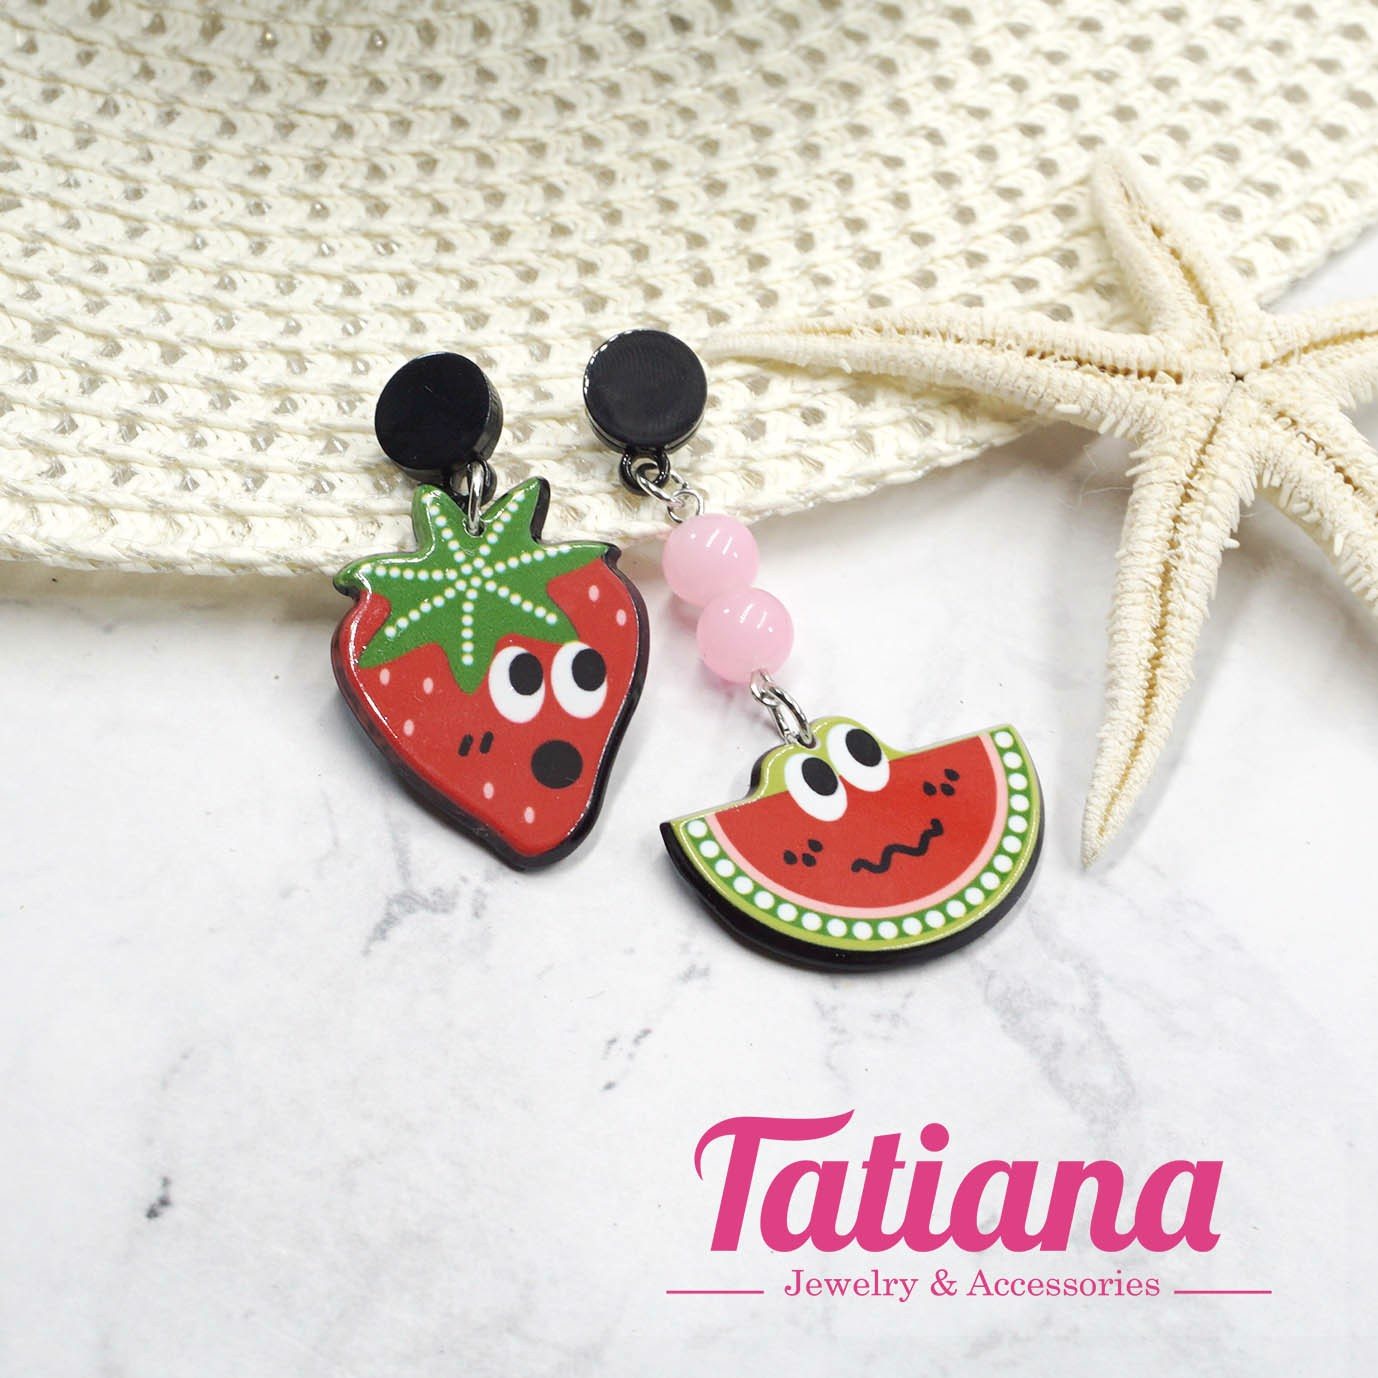 Bông Tai BĐX Strawberry and Water Melon - Tatiana - BH3351 (Đỏ)